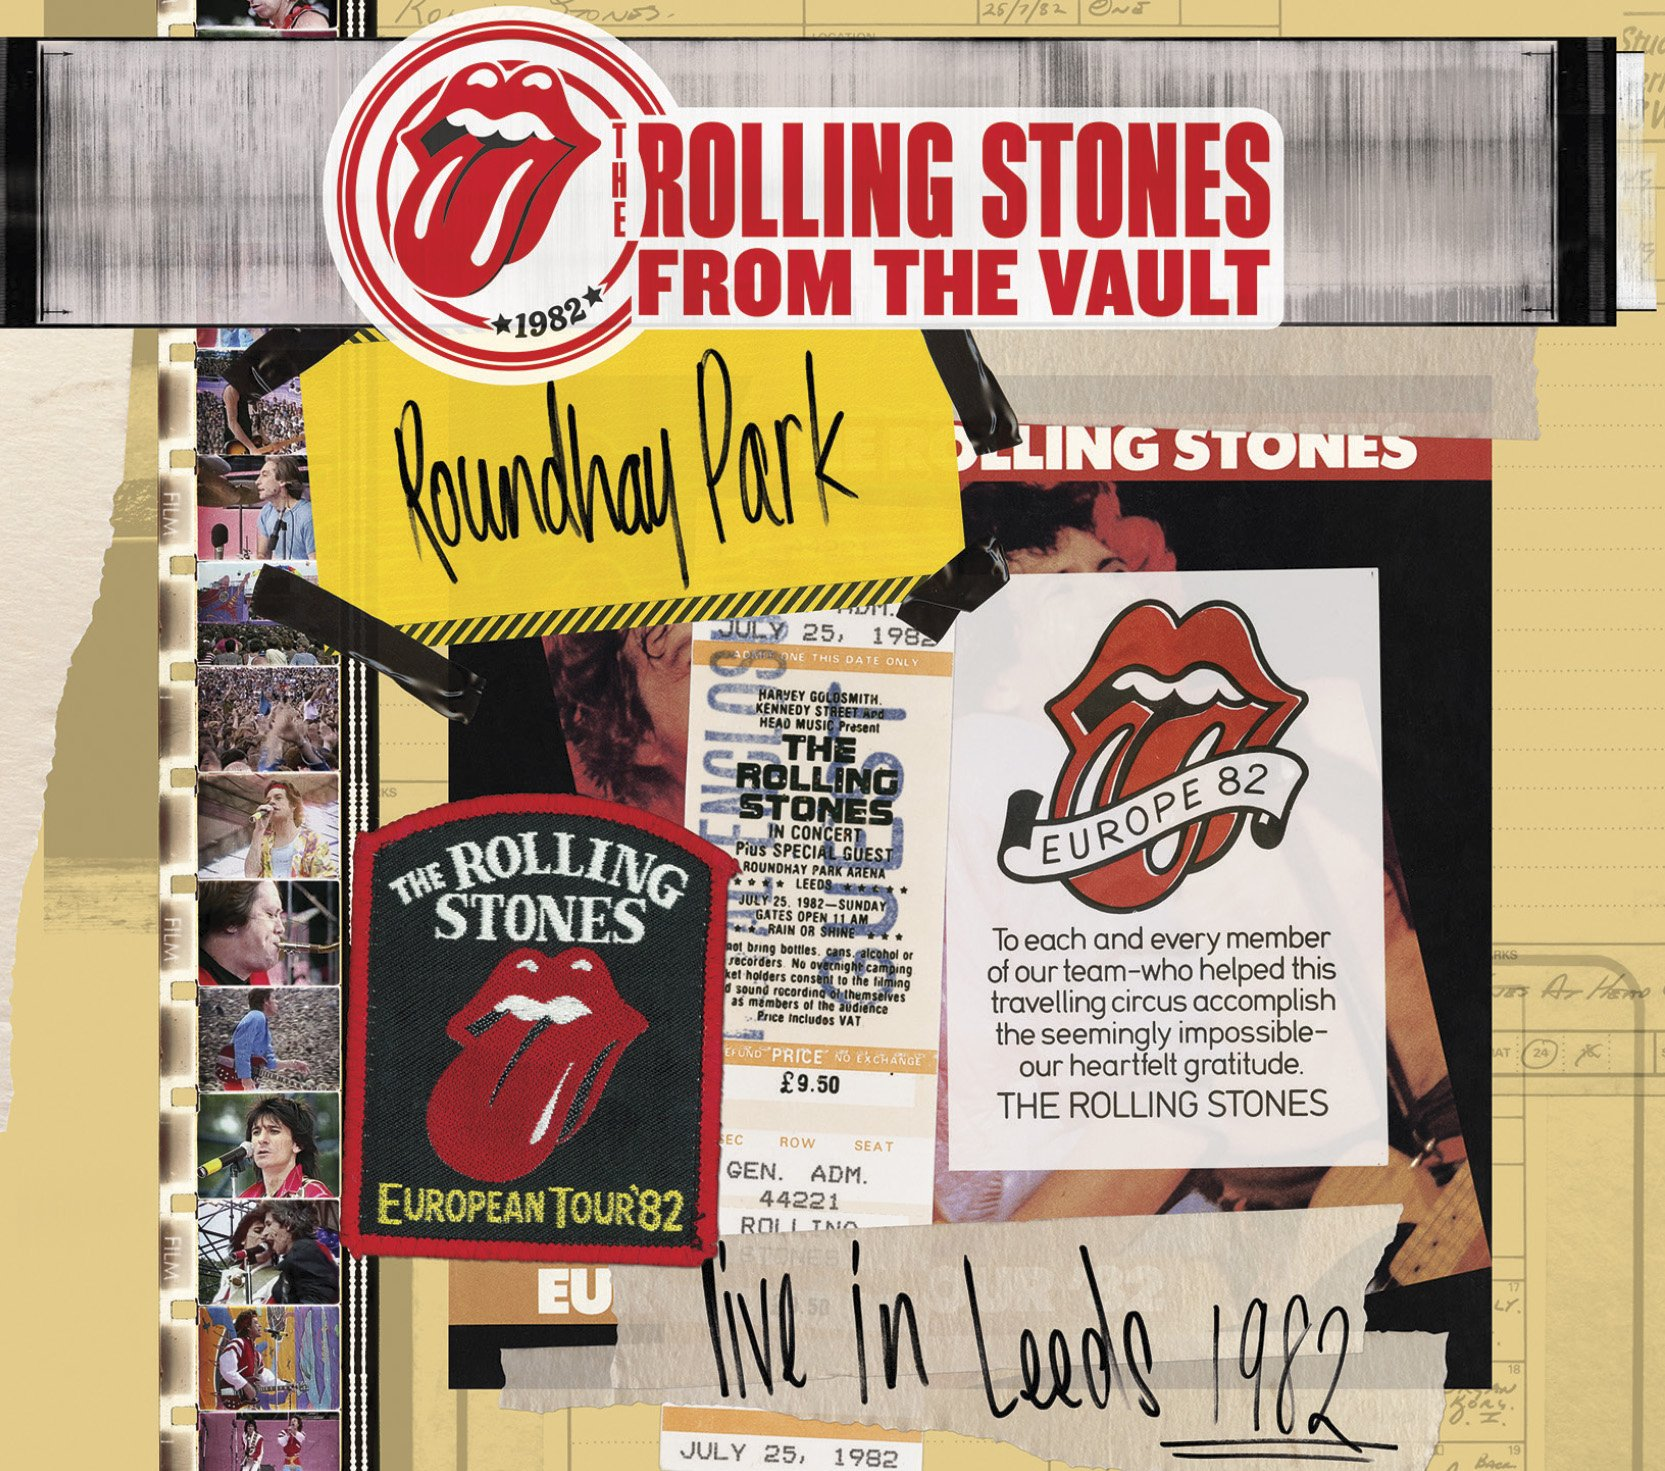 DVD : The Rolling Stones - The Rolling Stones: From the Vault - Live in Leeds 1982 (With DVD, 3 Disc)